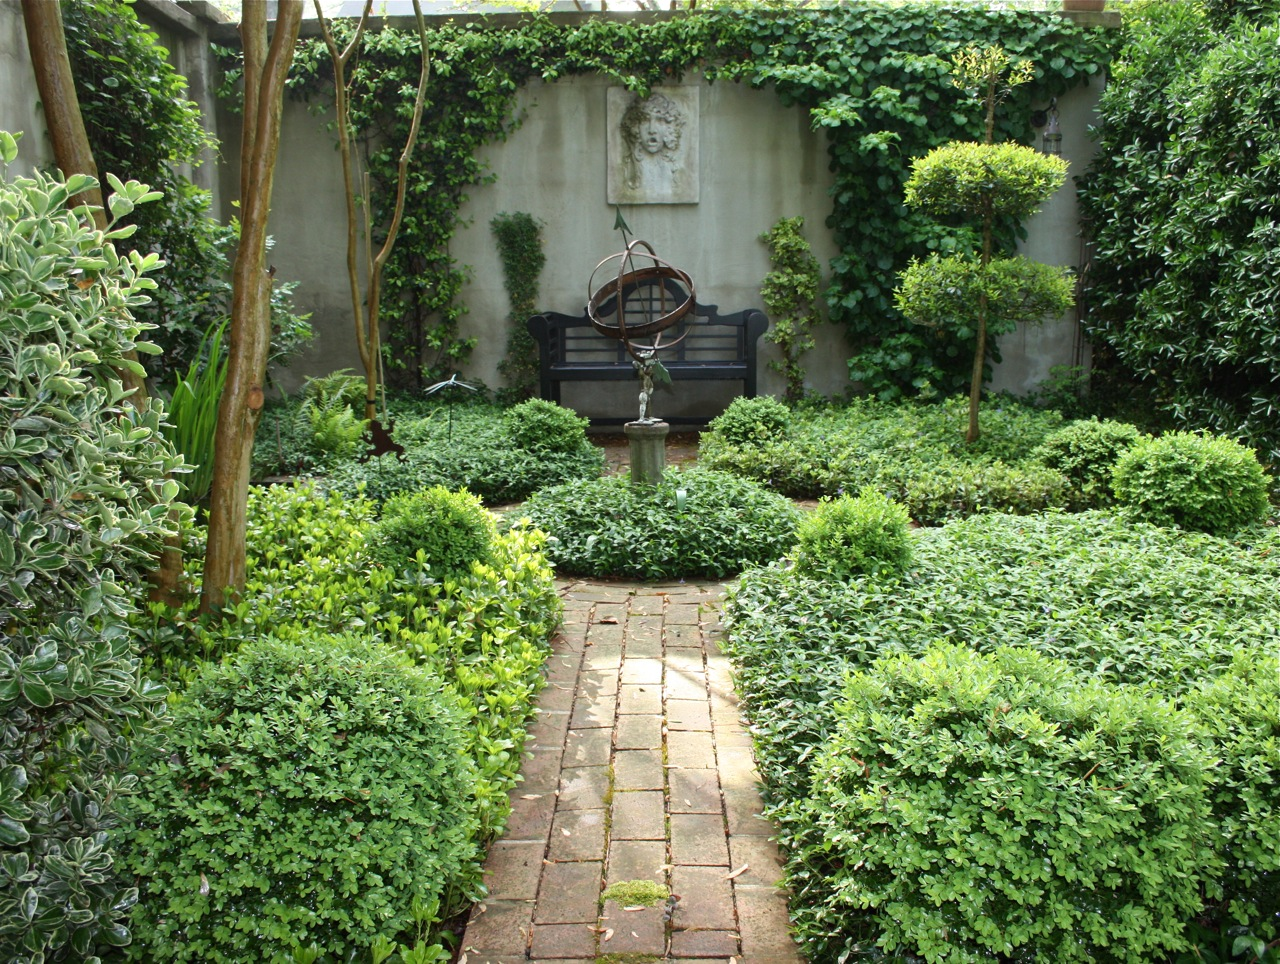 A curious gardener southern courtyard gardens for Courtyard entertaining ideas